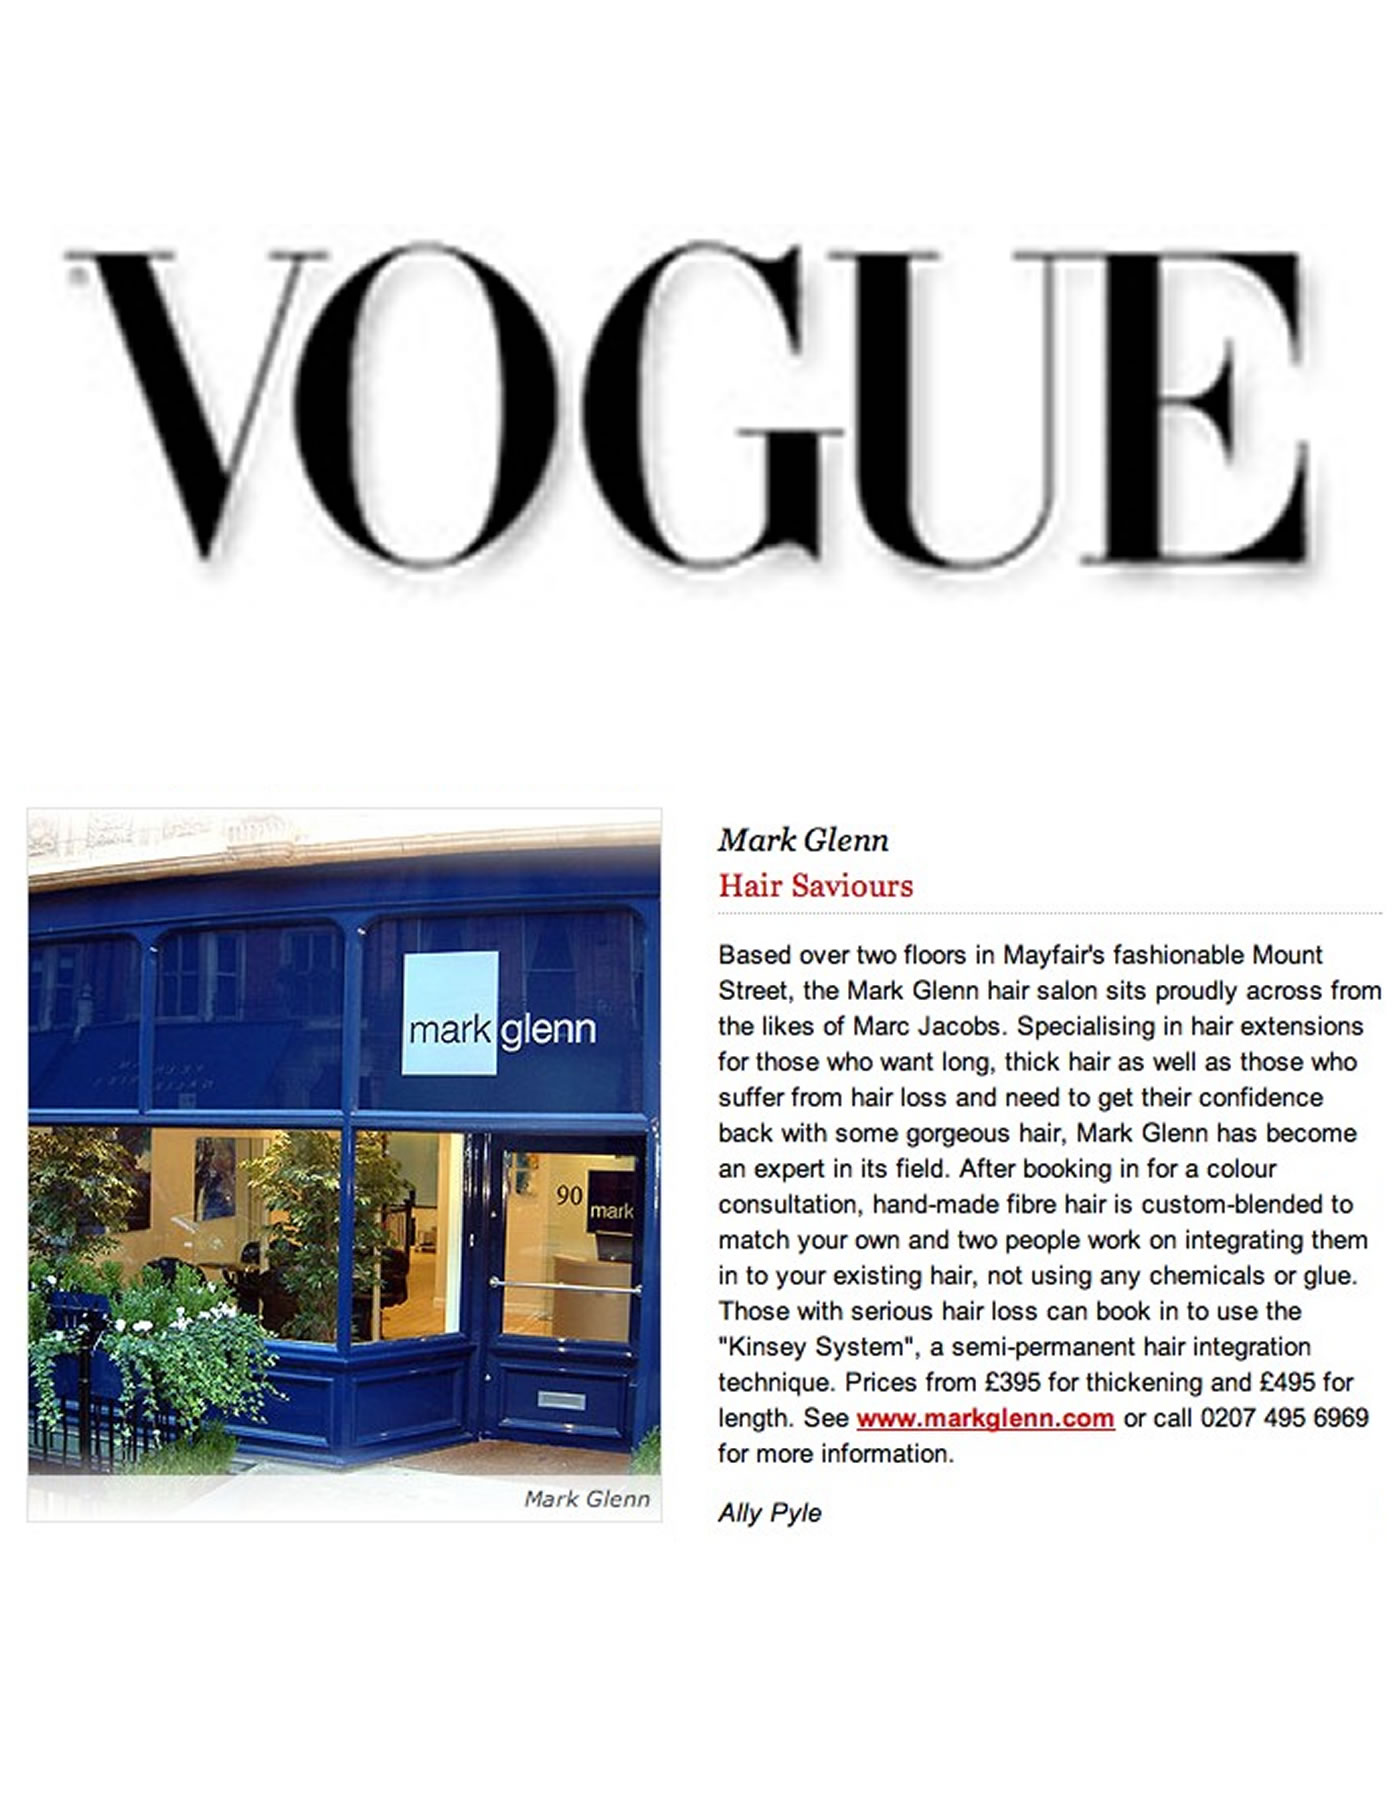 Mark Glenn - both 'hair saviours' and 'the hair extension experts' says Vogue